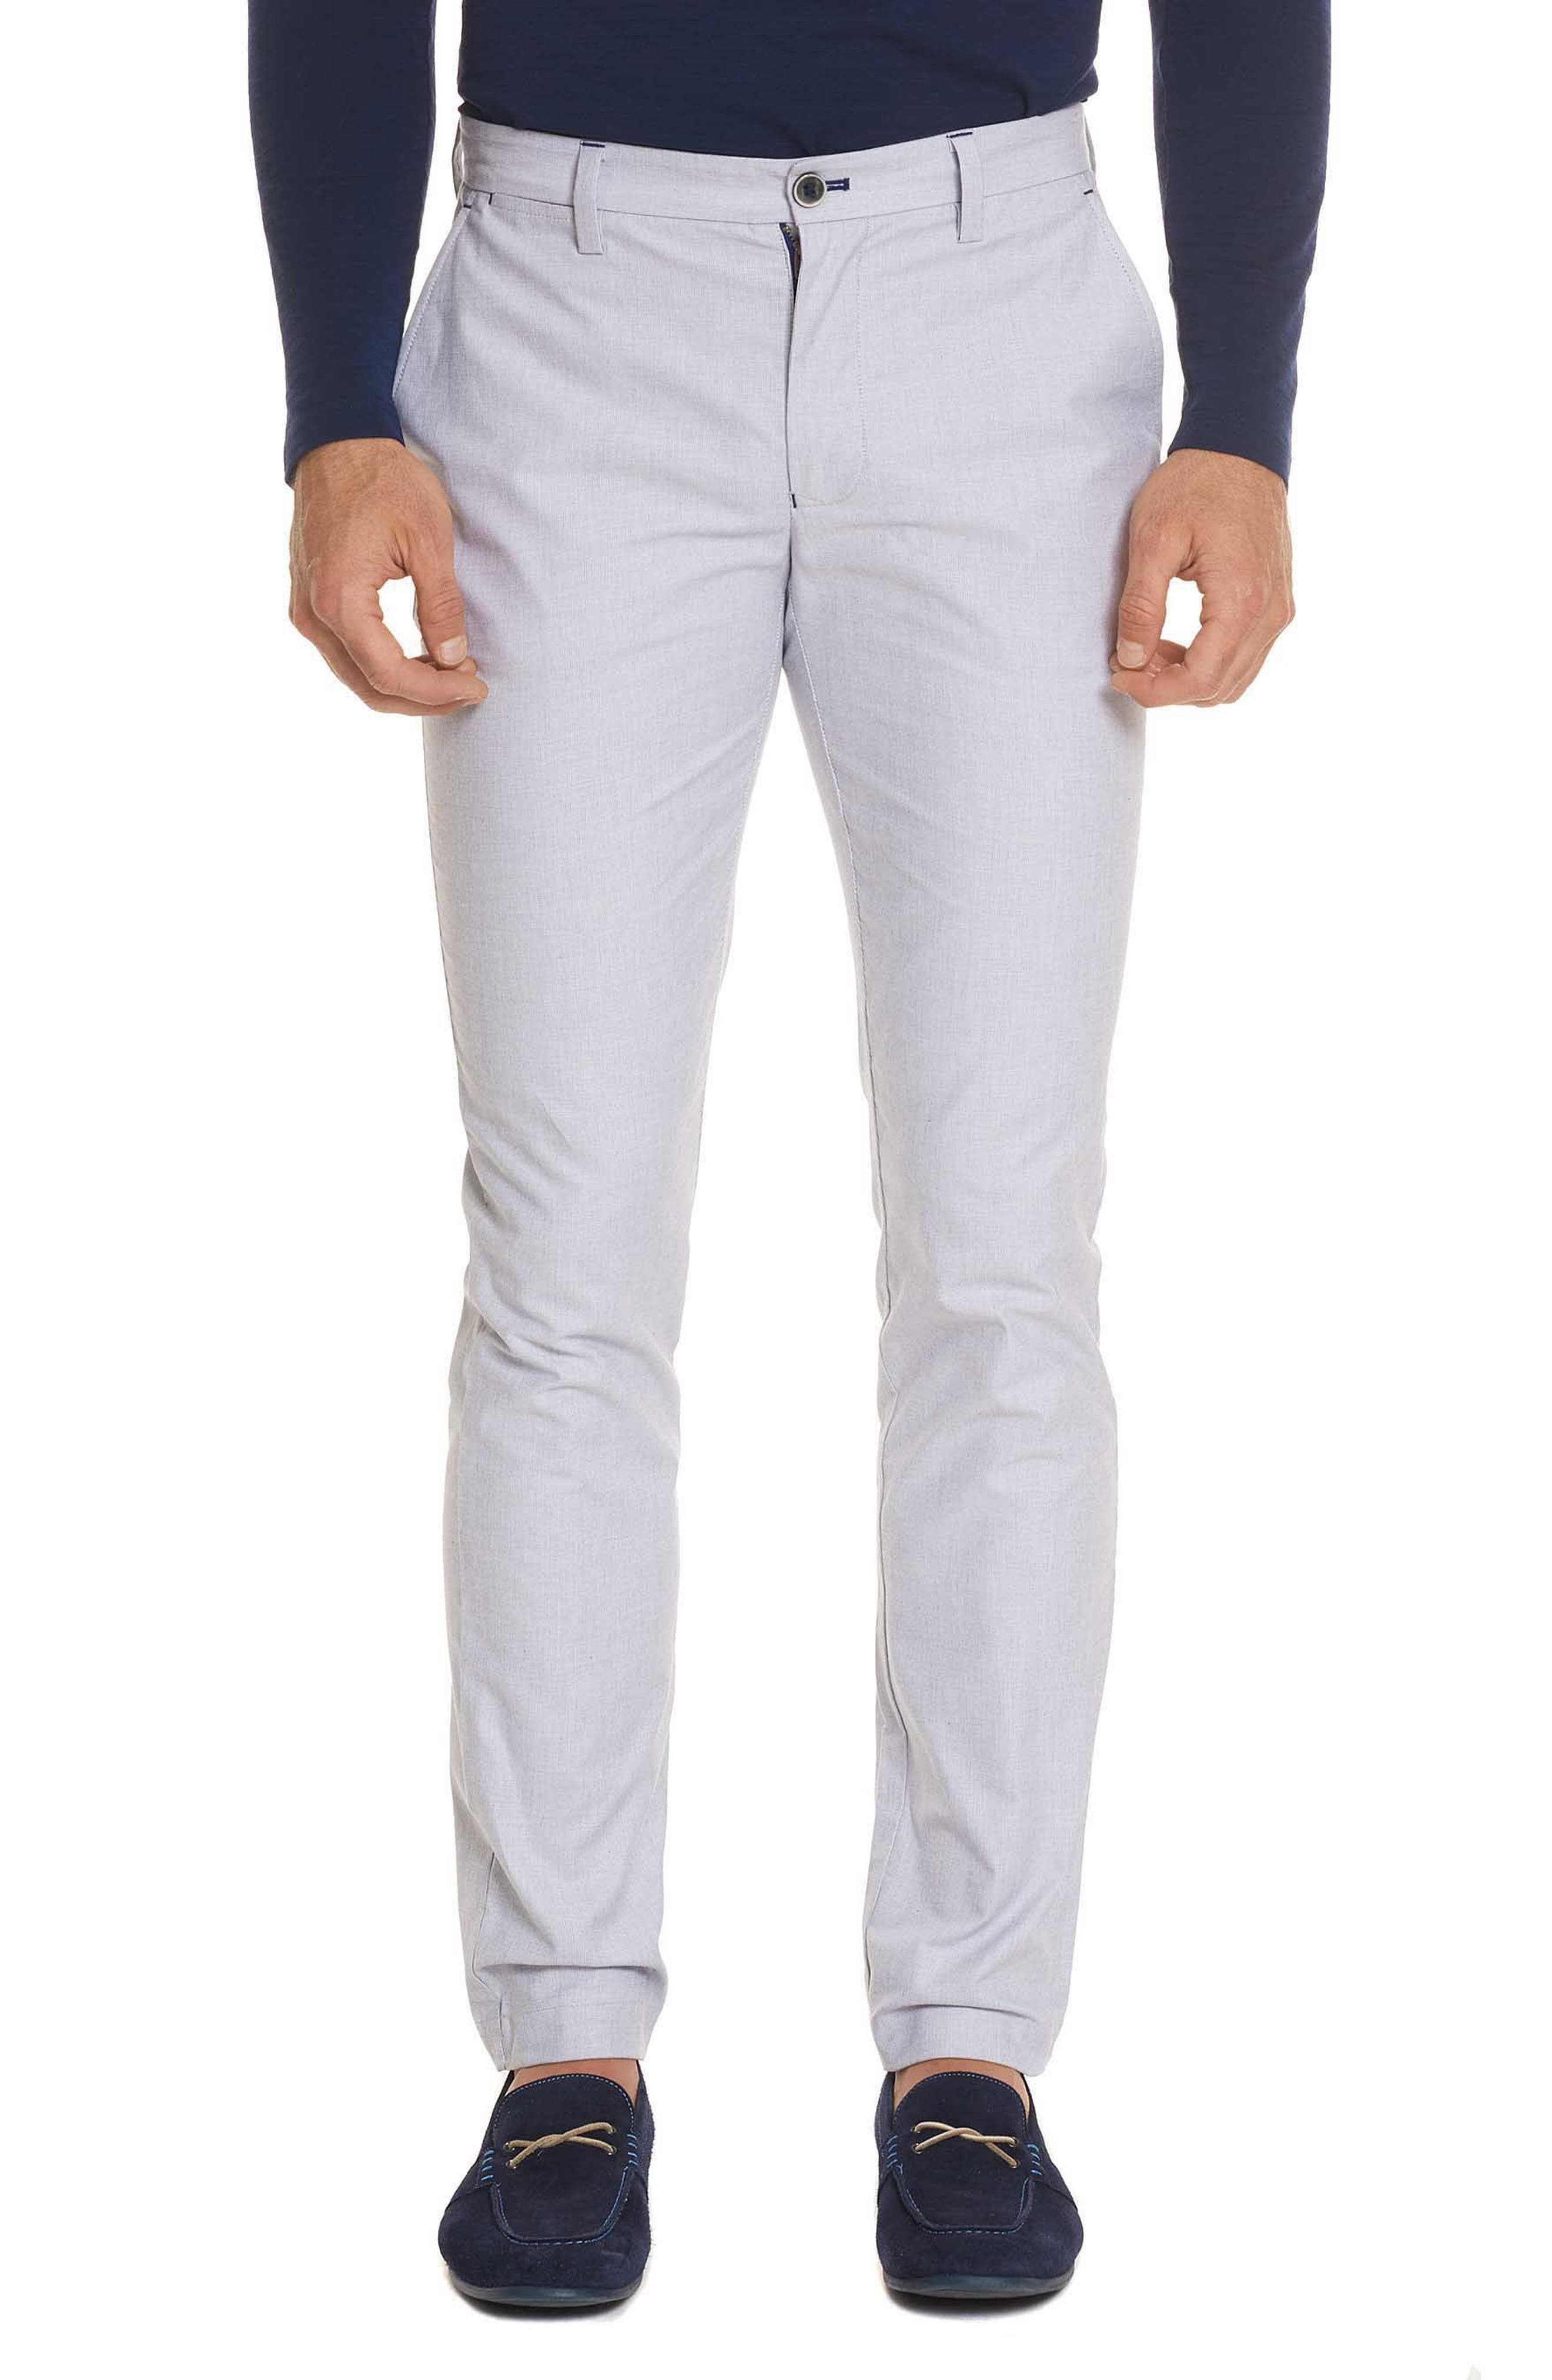 Gerardo Tailored Fit Pants,                             Main thumbnail 1, color,                             White